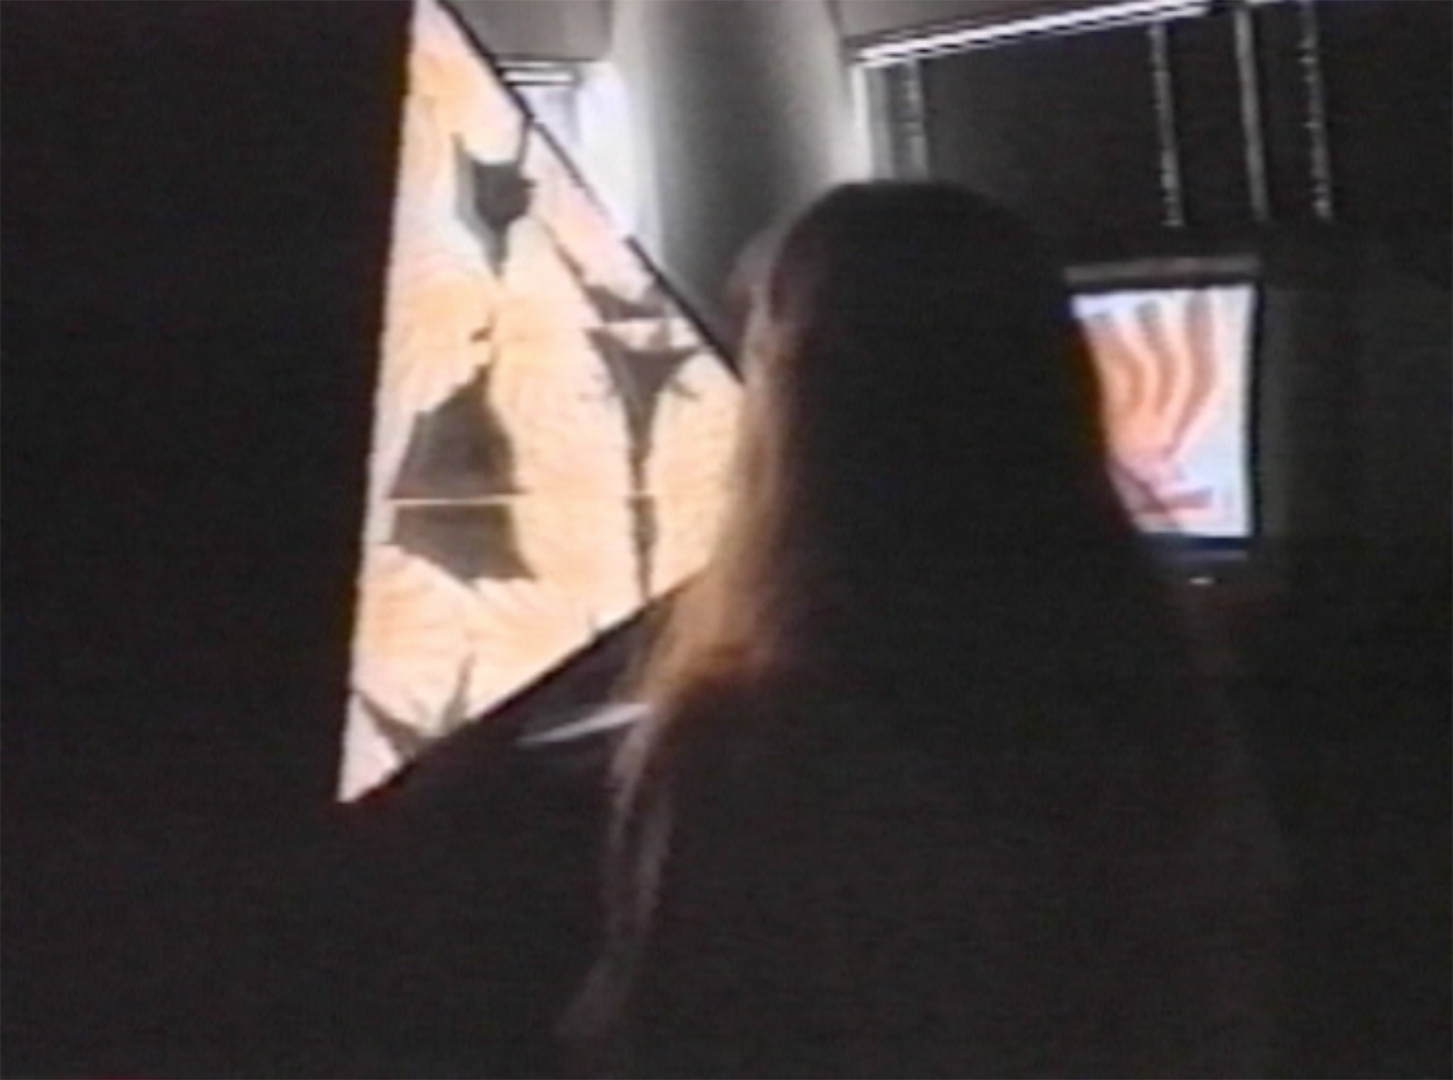 ©1988, Karl Sims and John Watlington, Interactive Video Kaleidoscope